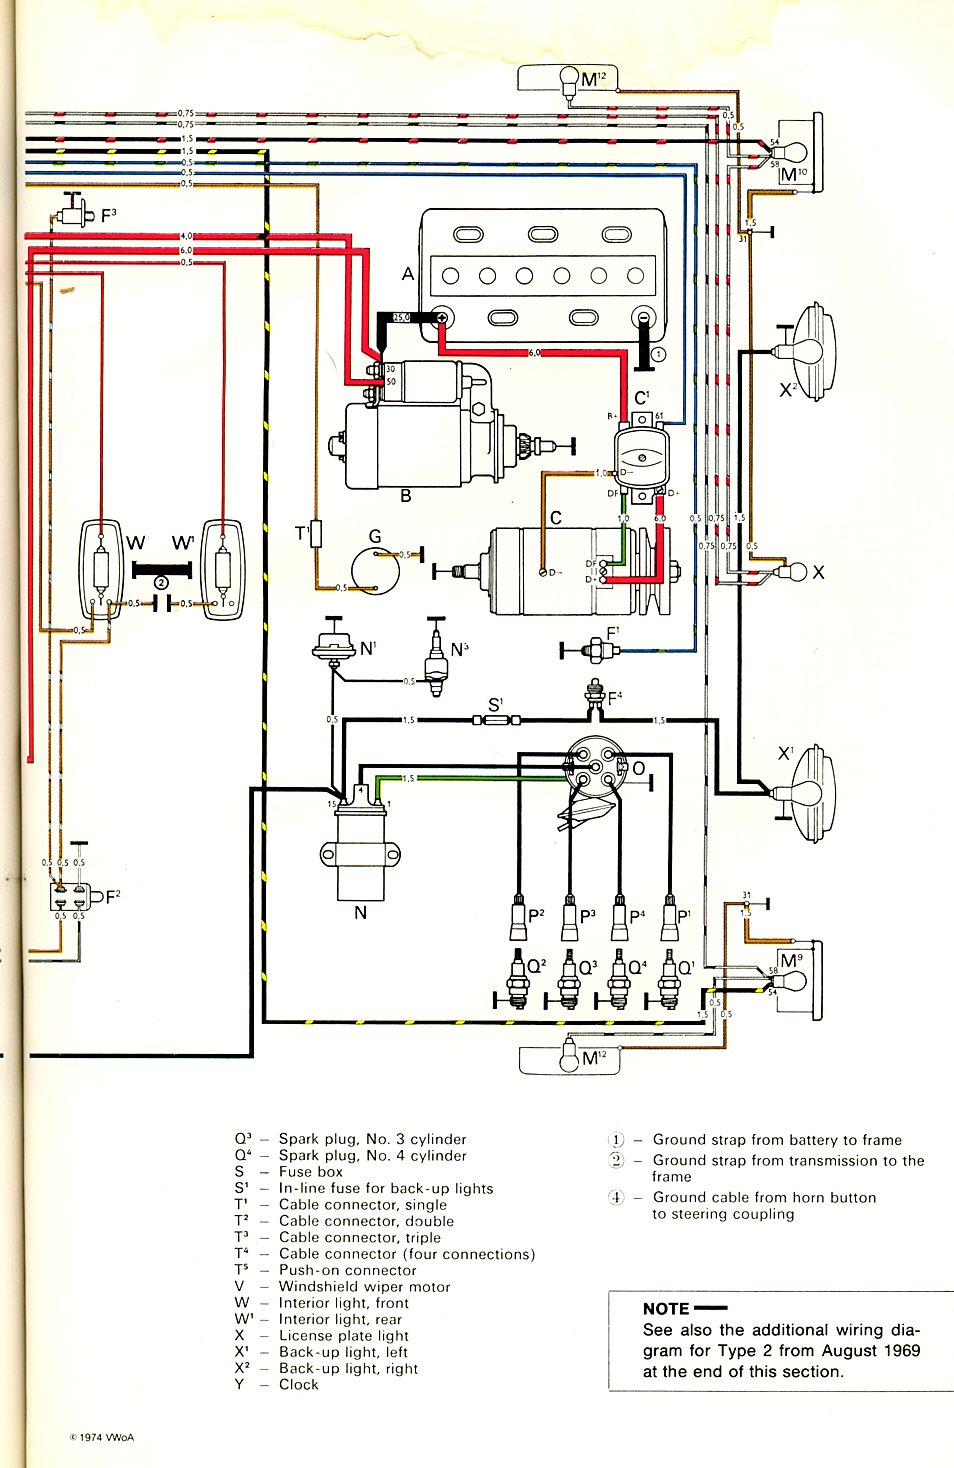 baybus_70b thesamba com type 2 wiring diagrams vw engine wiring diagram at webbmarketing.co